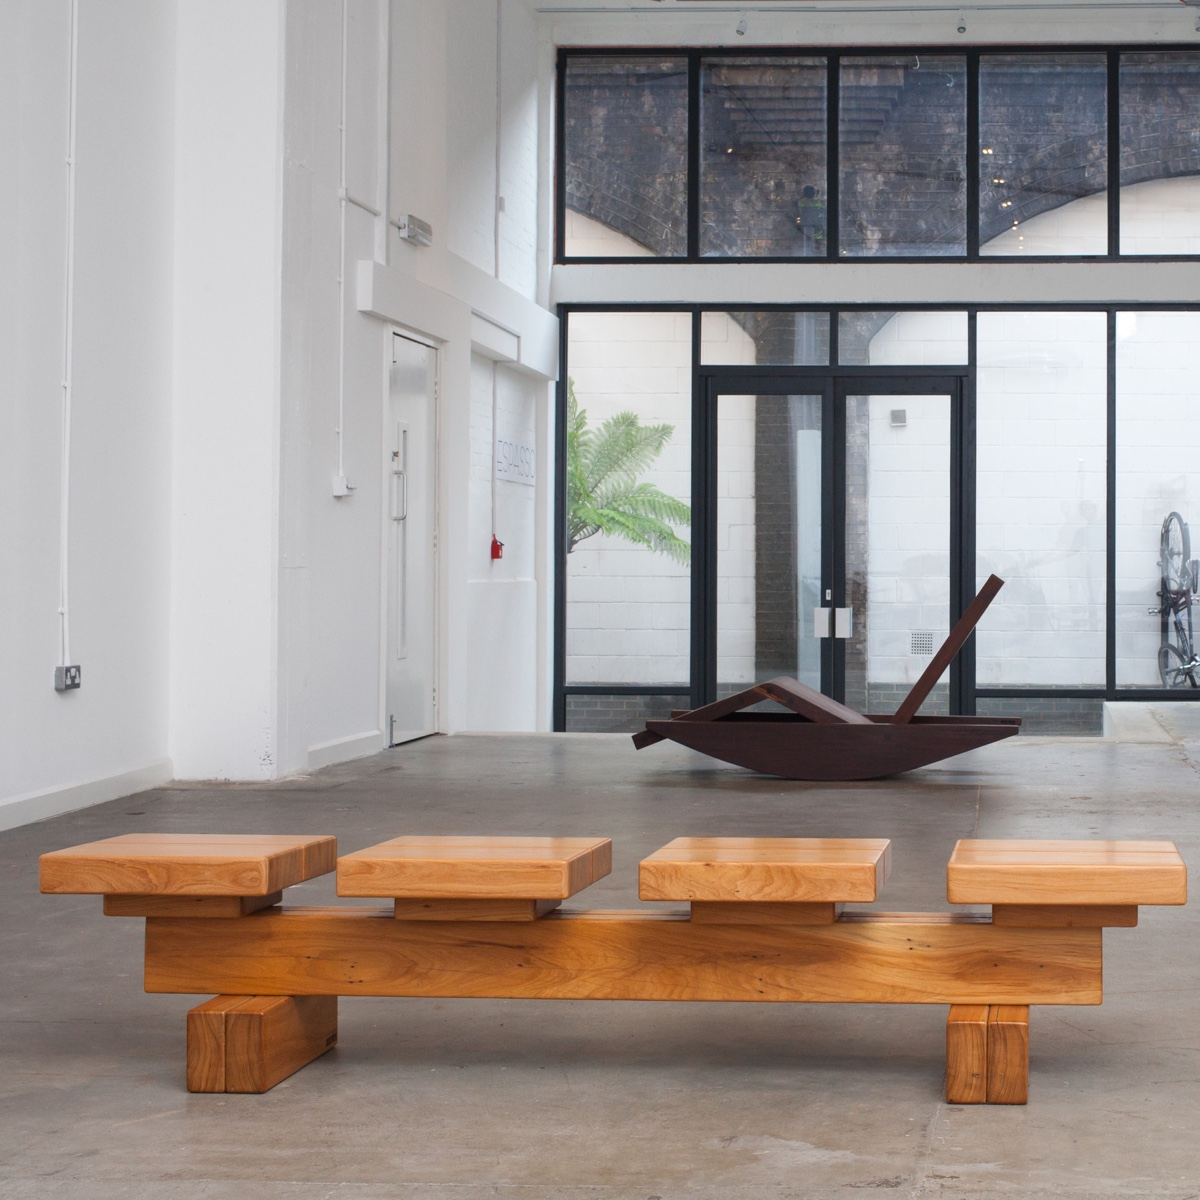 Tablete byZanini de Zanine is a limited edition bench,handcrafted from reclaimed perobatimber.